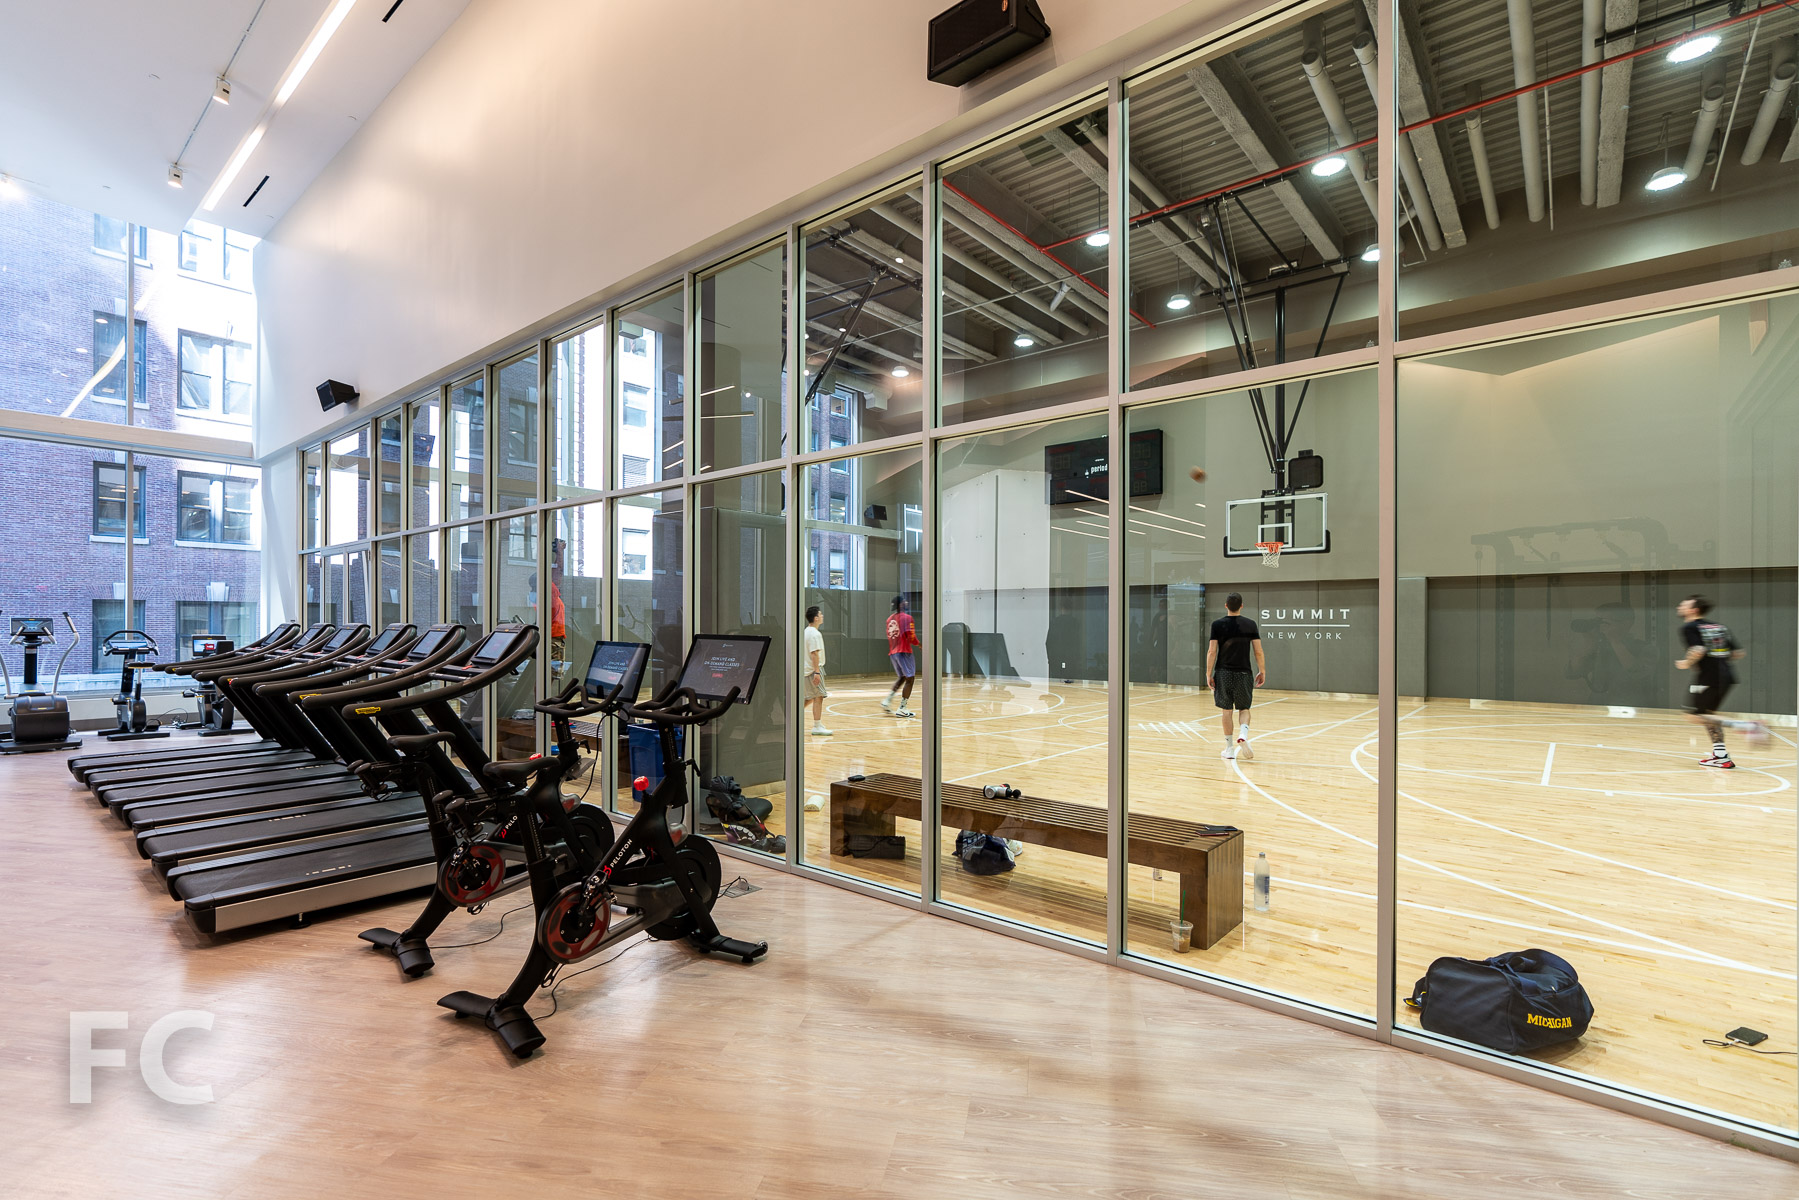 Basketball court and fitness center at the Arena level.